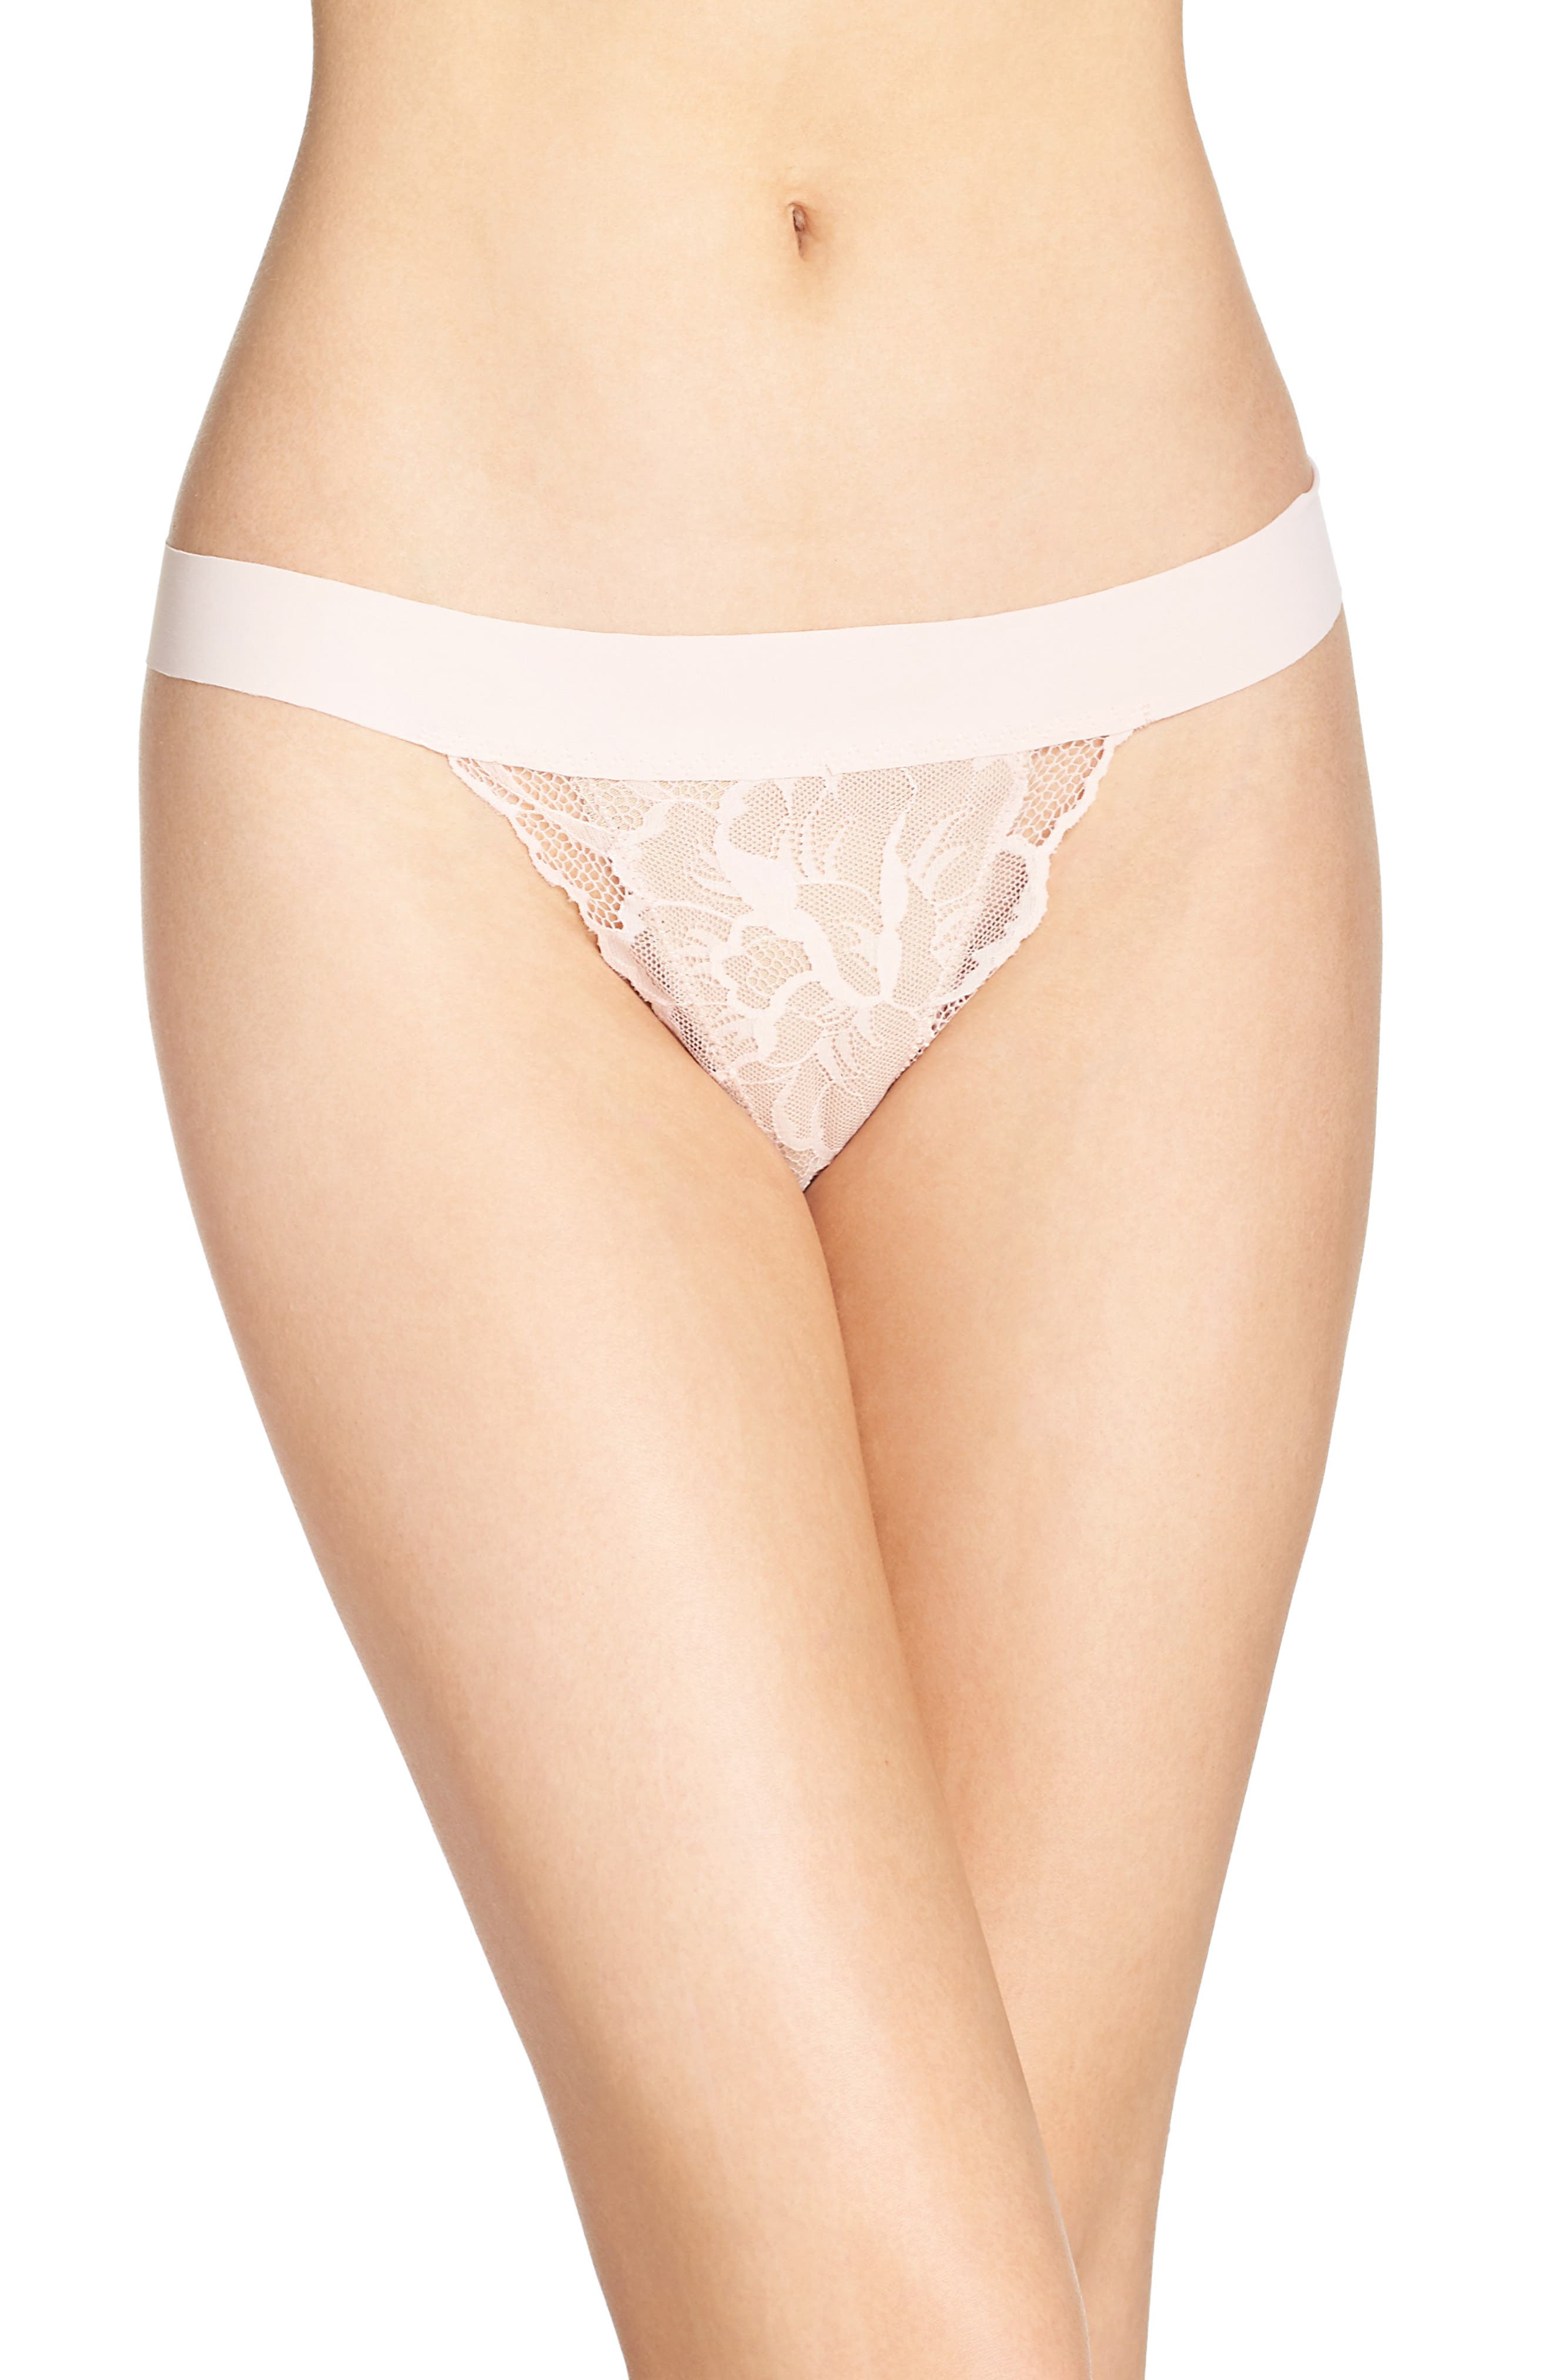 Commando 'Double Take' Lace G-String Thong